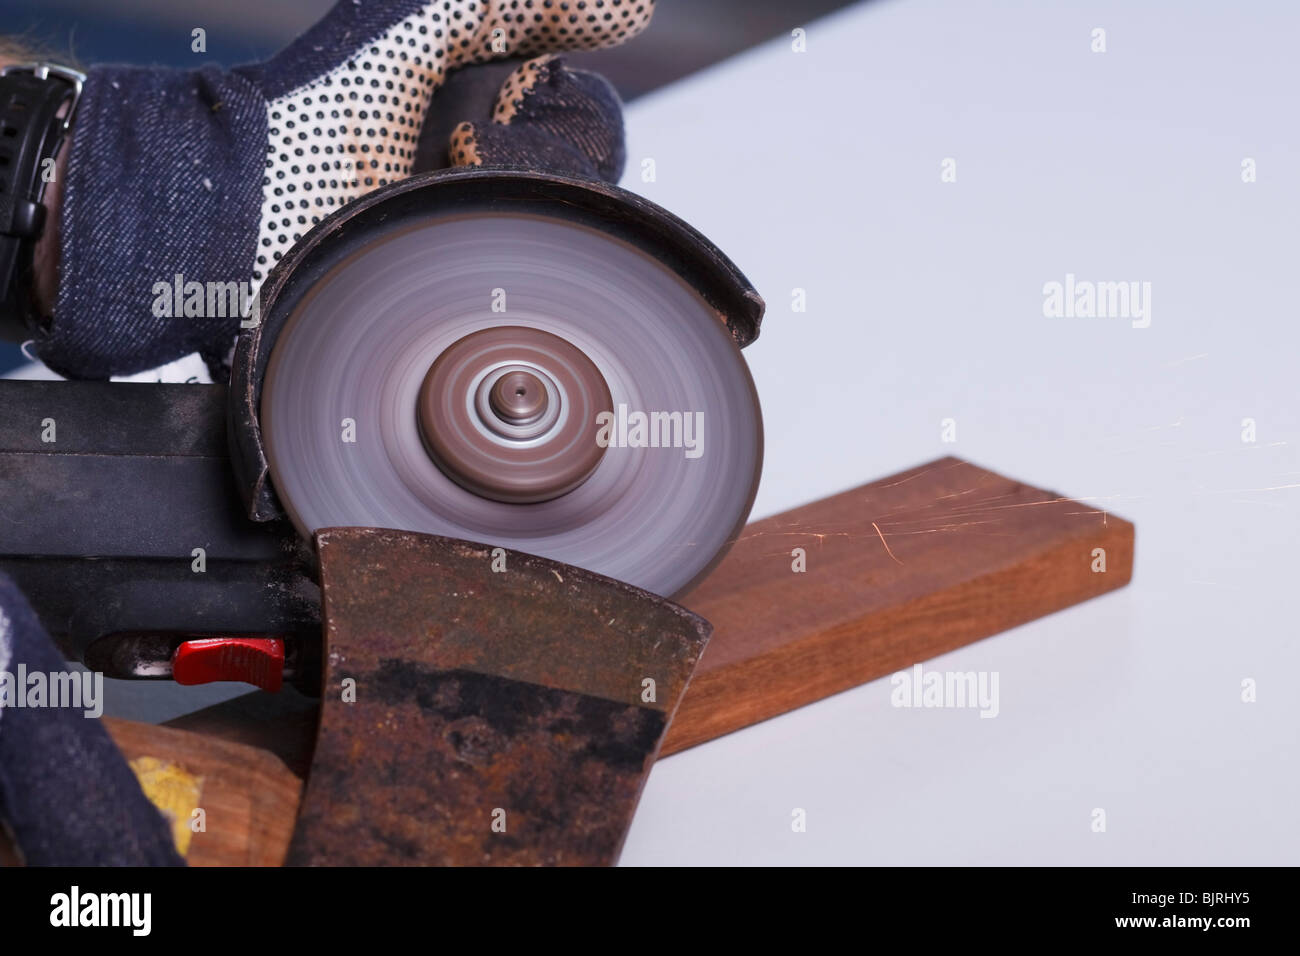 An angle grinder being used to sharpen the blade of an axe. - Stock Image